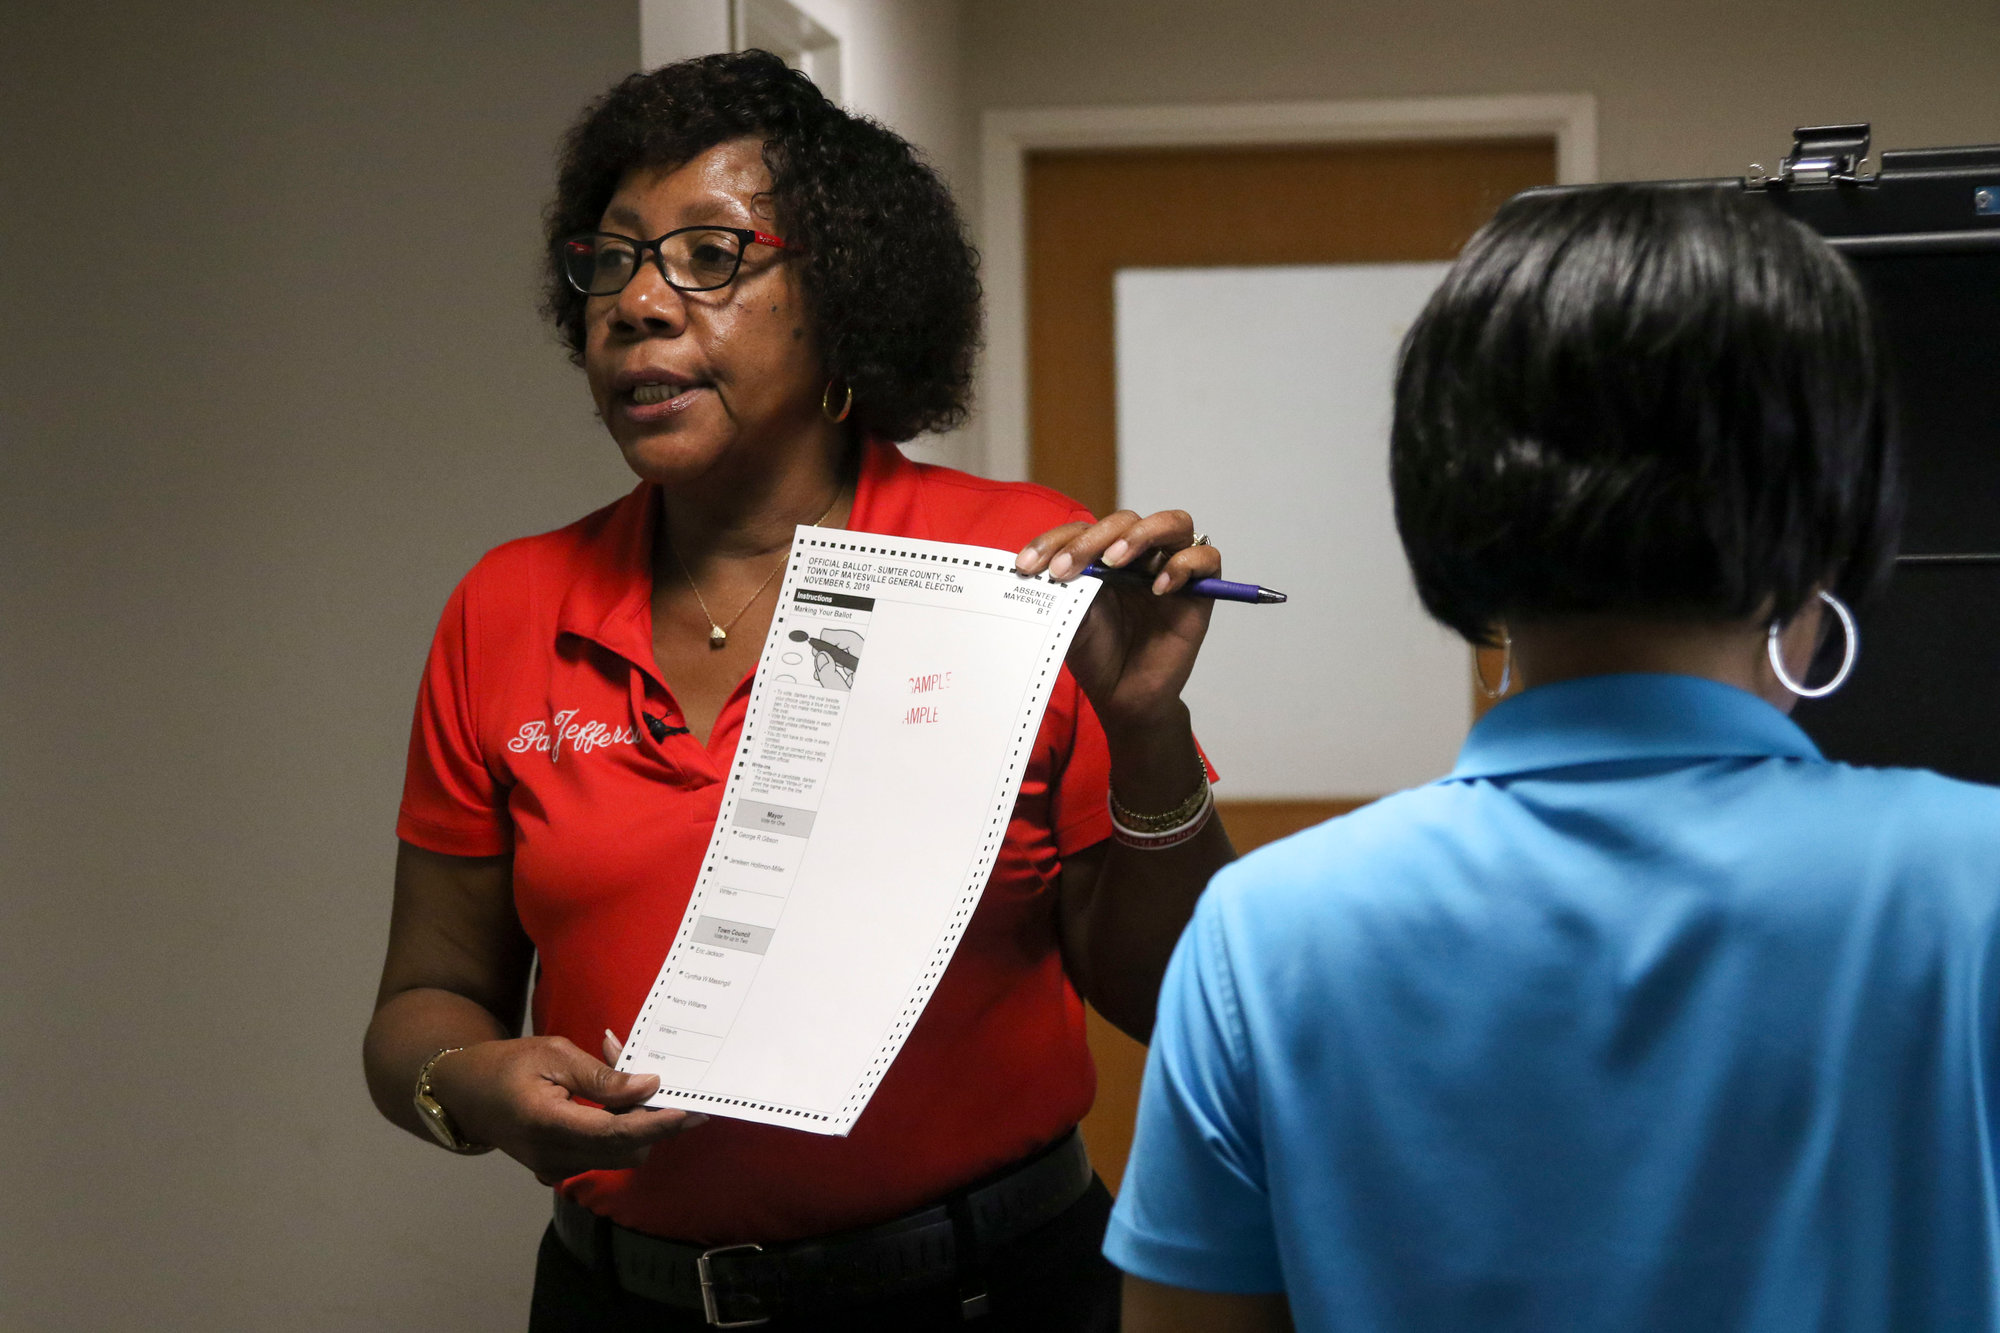 Pat Jefferson, director of Sumter County Voter Registration and Elections, displays a paper ballot that voters can elect to fill out instead of using the touchscreen.